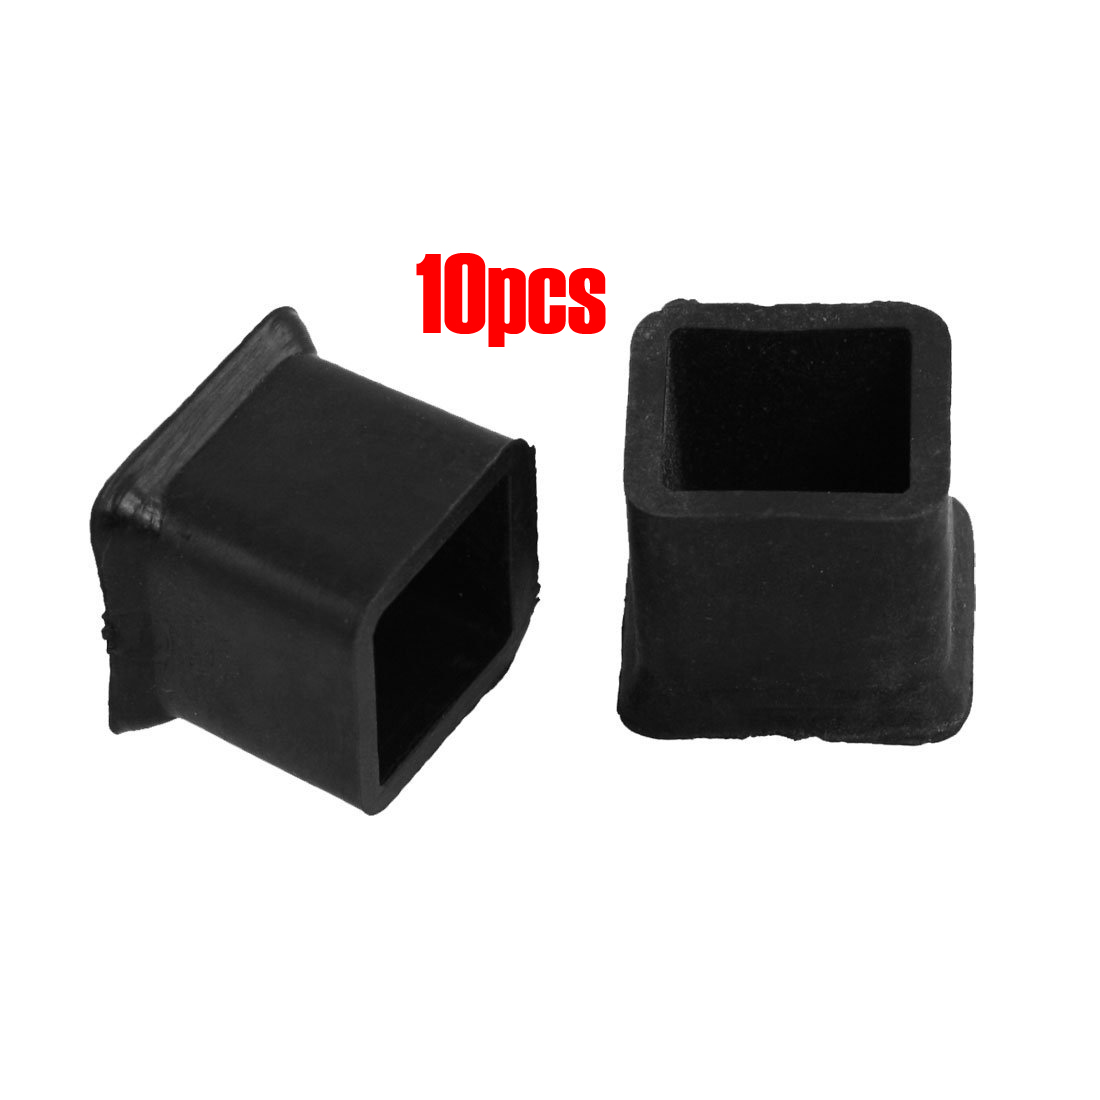 10 Pcs Furniture Chair Table Leg Rubber Foot Covers Protectors 20mm x 20mm rubber round table foot cover protector 8mm inner dia 24 pcs